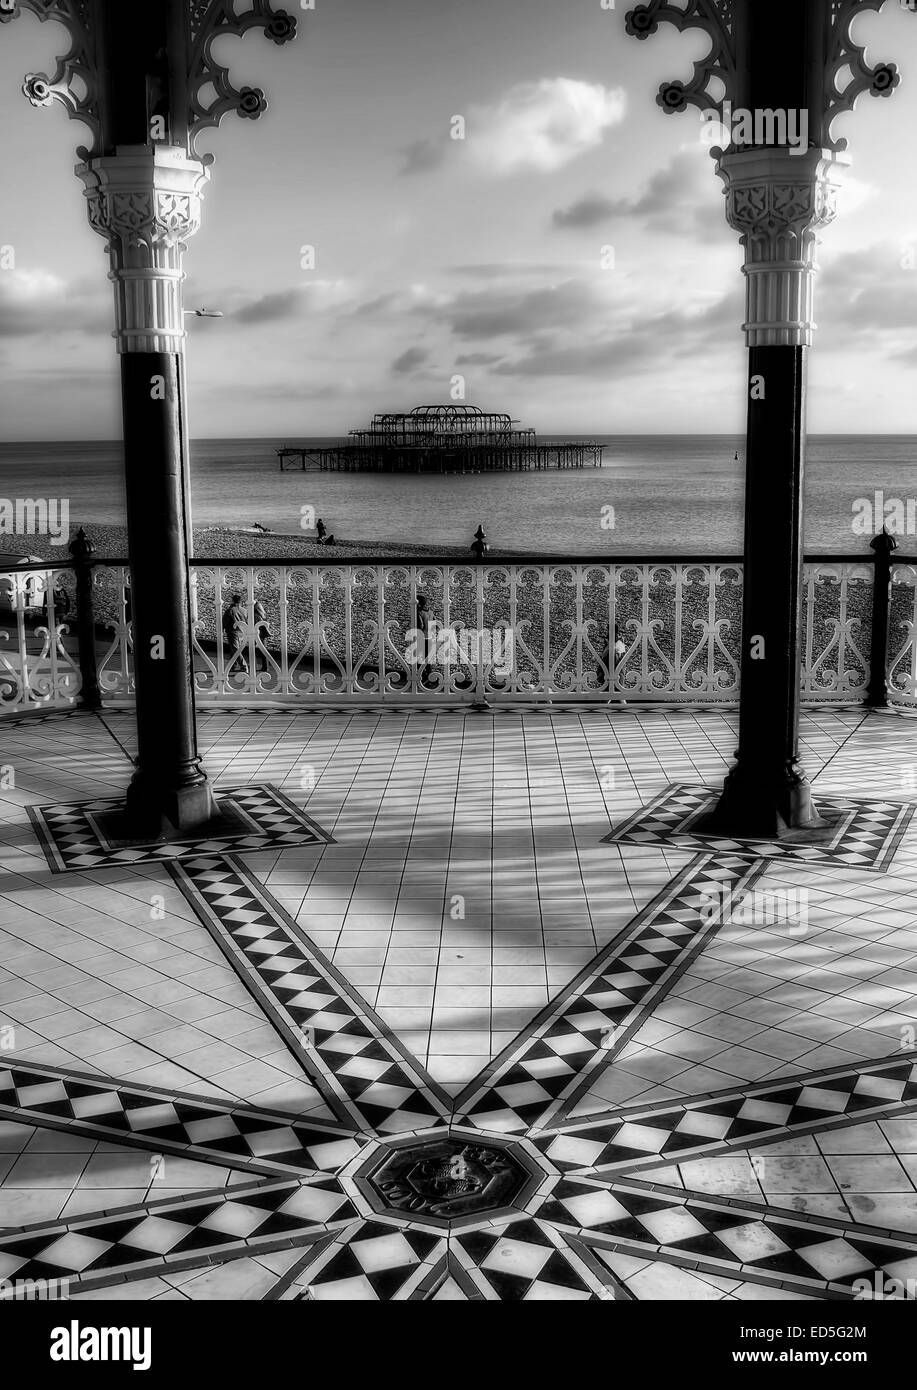 The view from Brighton Bandstand looking out over the West Pier that was burnt down in Brighton, East Sussex. - Stock Image